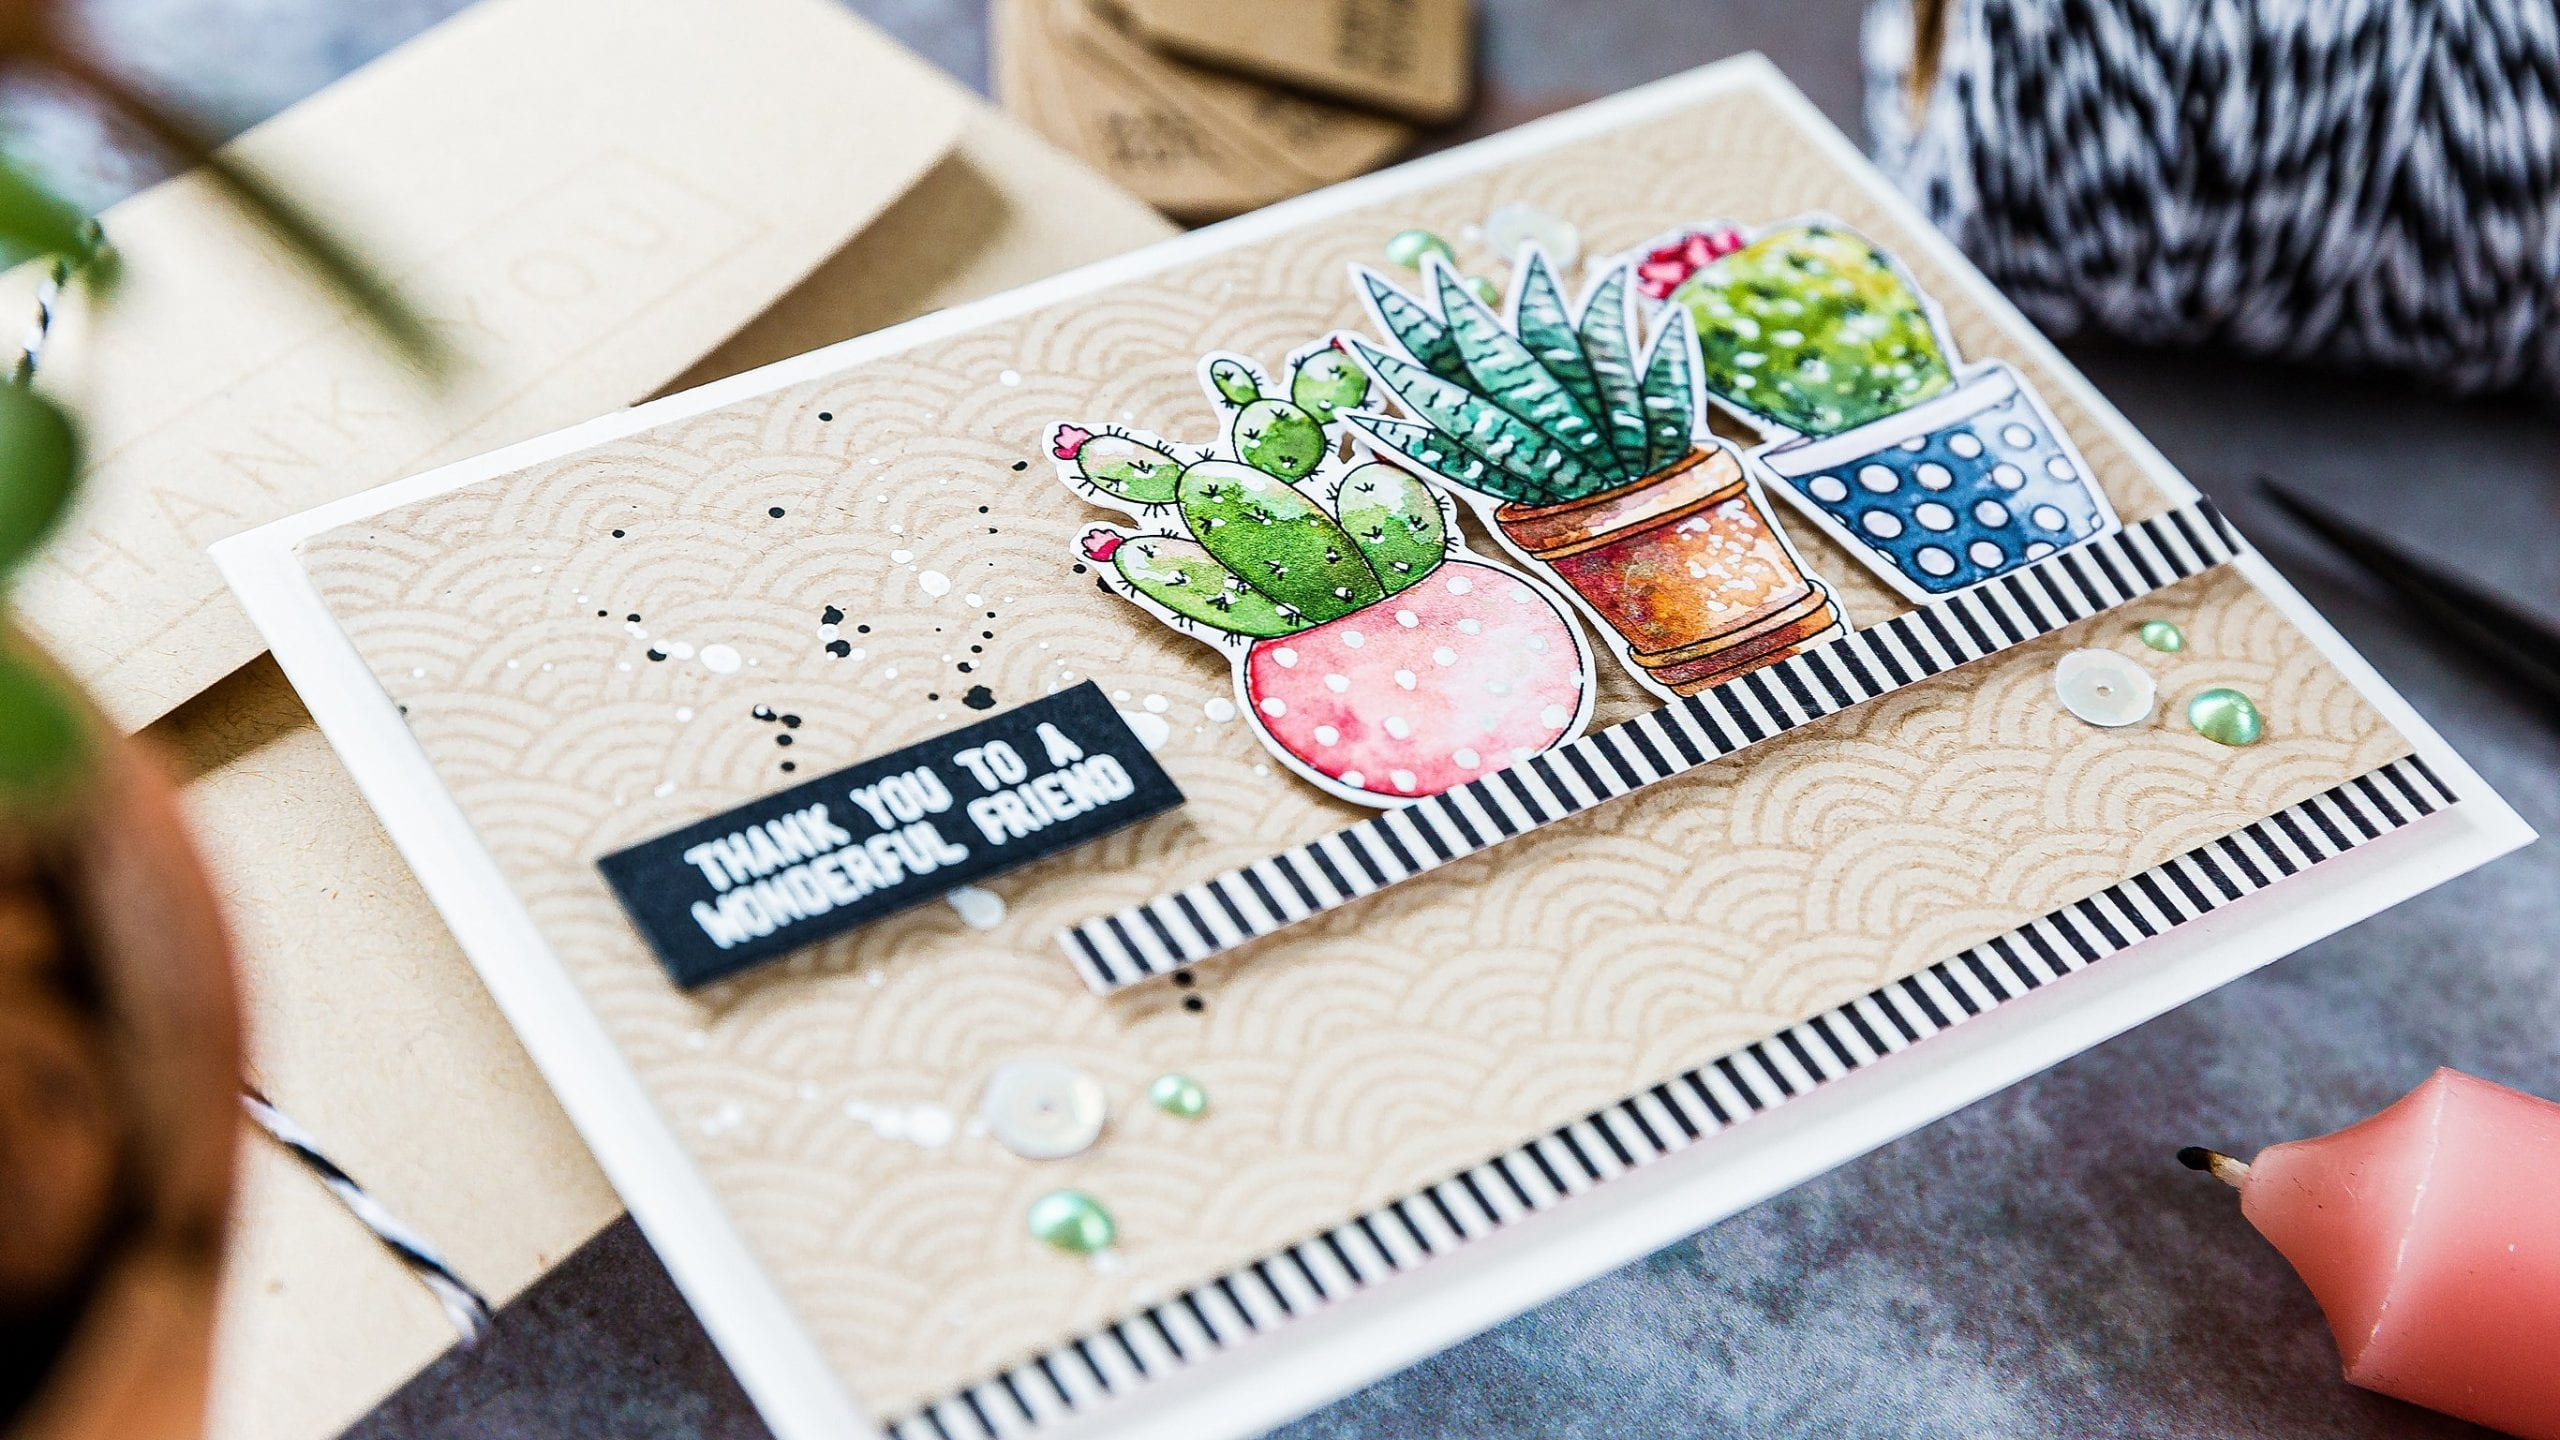 Video - making the most of watercolour prints. Handmade card and matching envelope by Debby Hughes using supplies from Simon Says Stamp. Find out more here: https://limedoodledesign.com/2019/08/video-making-the-most-of-watercolour-prints/